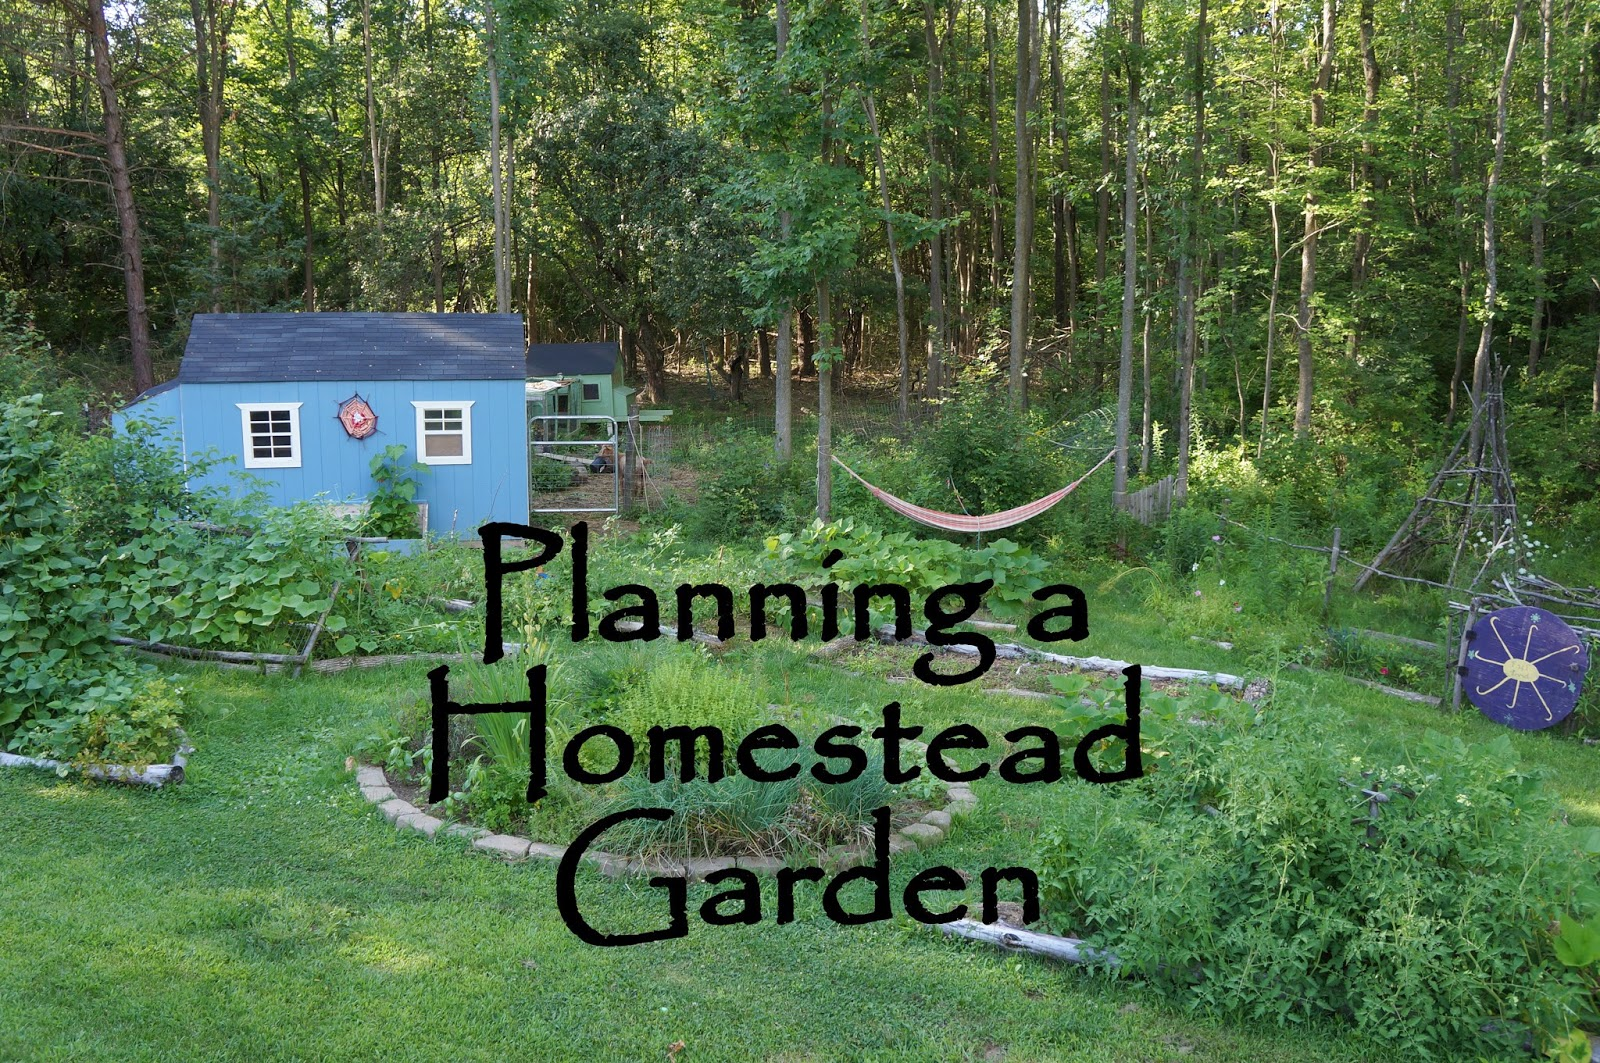 The Backyard Farming Connection Planning Your Homestead Garden